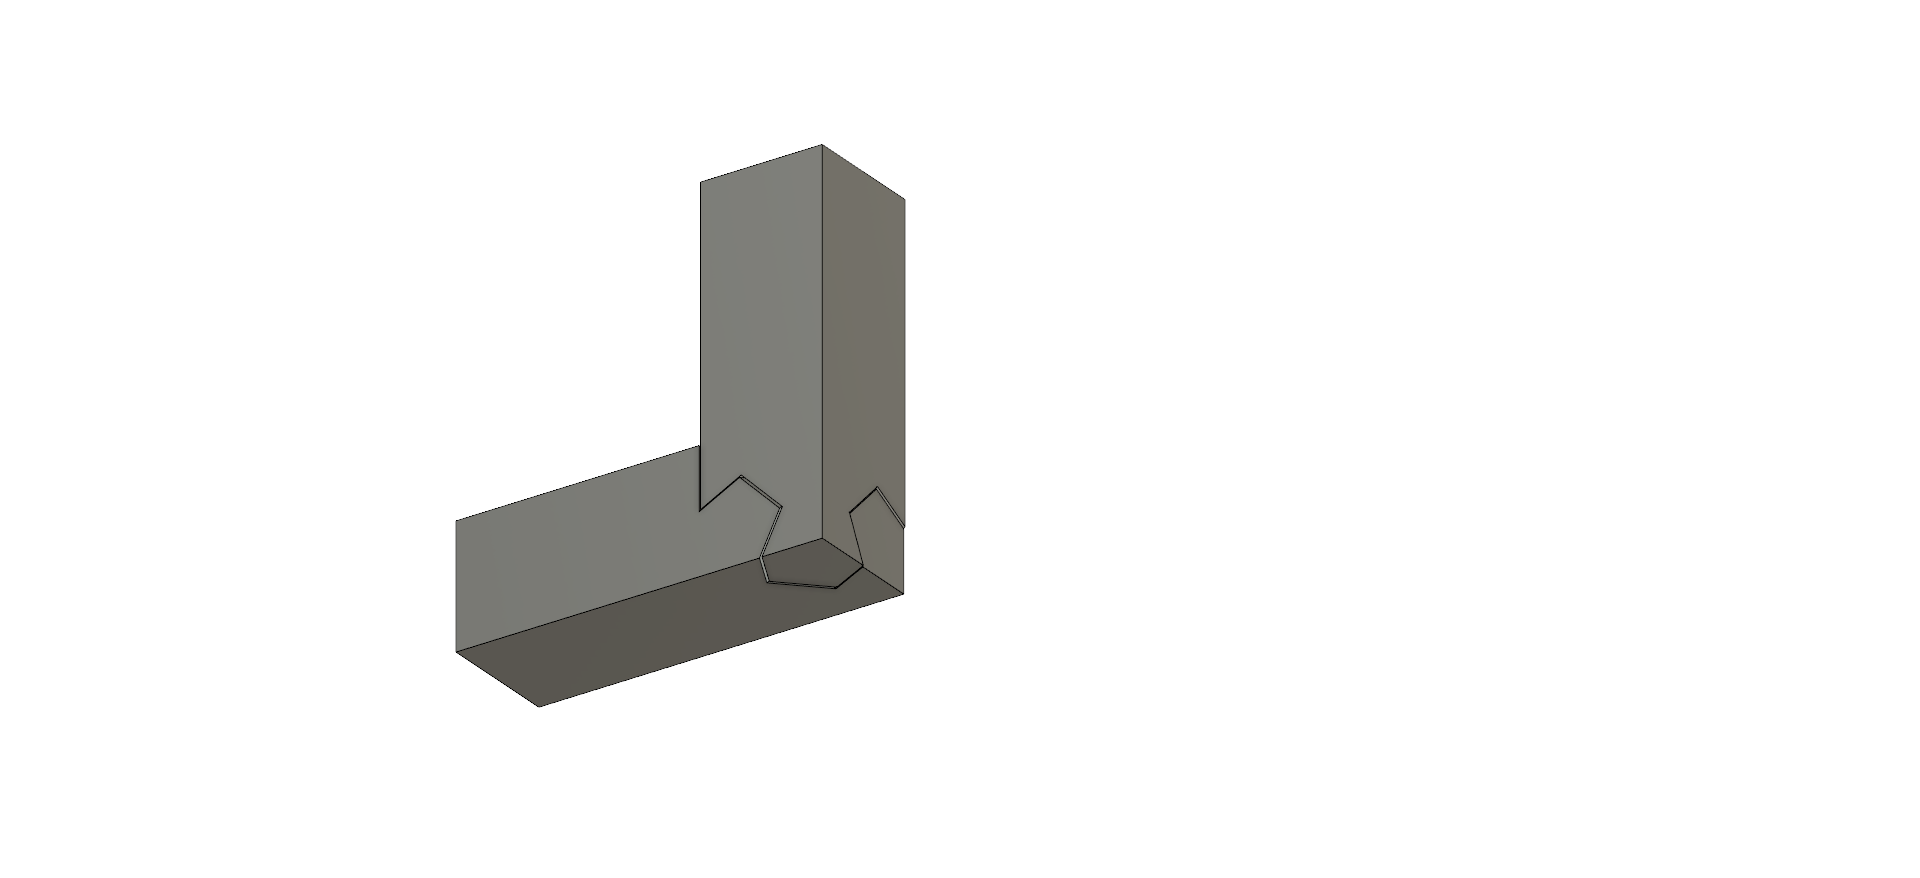 3way_joint_4.png Download free STL file 3way joint_(Kawai Tsugite) • 3D print template, Fricis